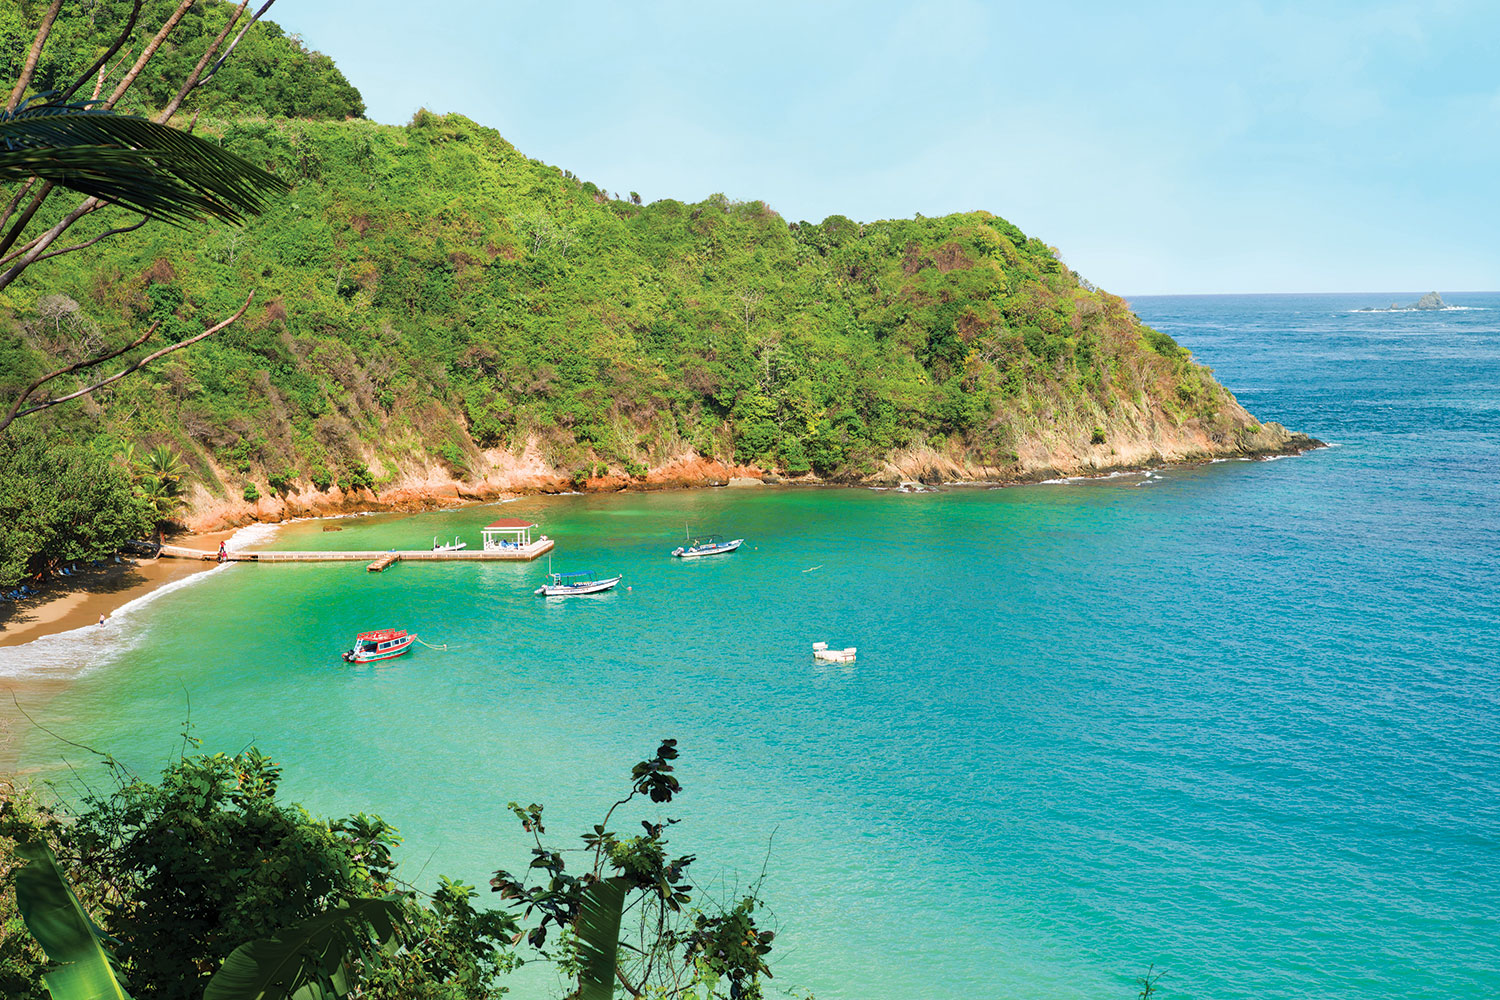 The 7 ethical tourism tips you need to know to sell Tobago